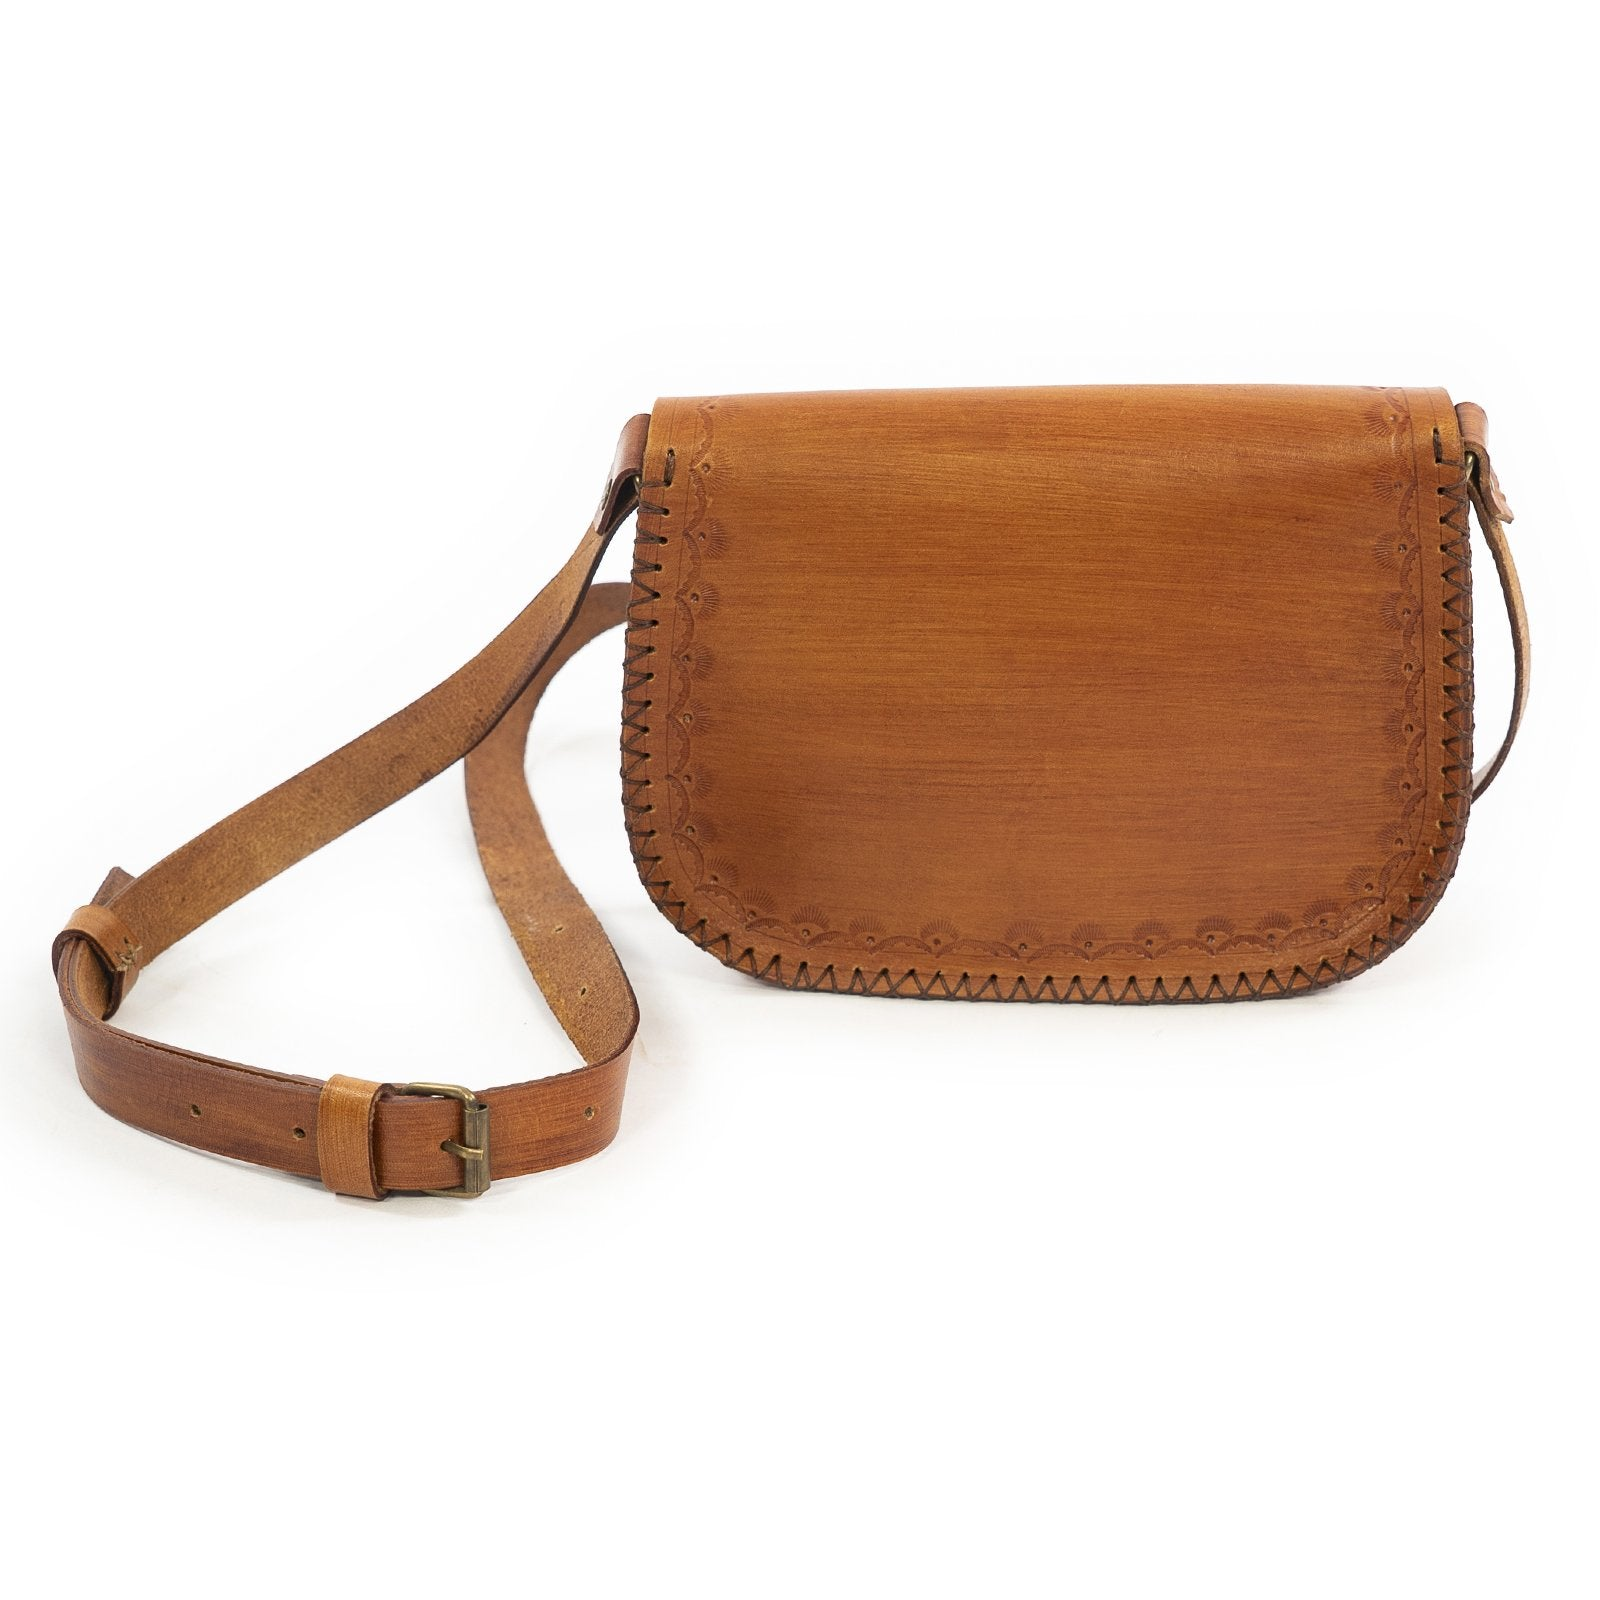 Derifix Voe Women's Handmade Leather Bag